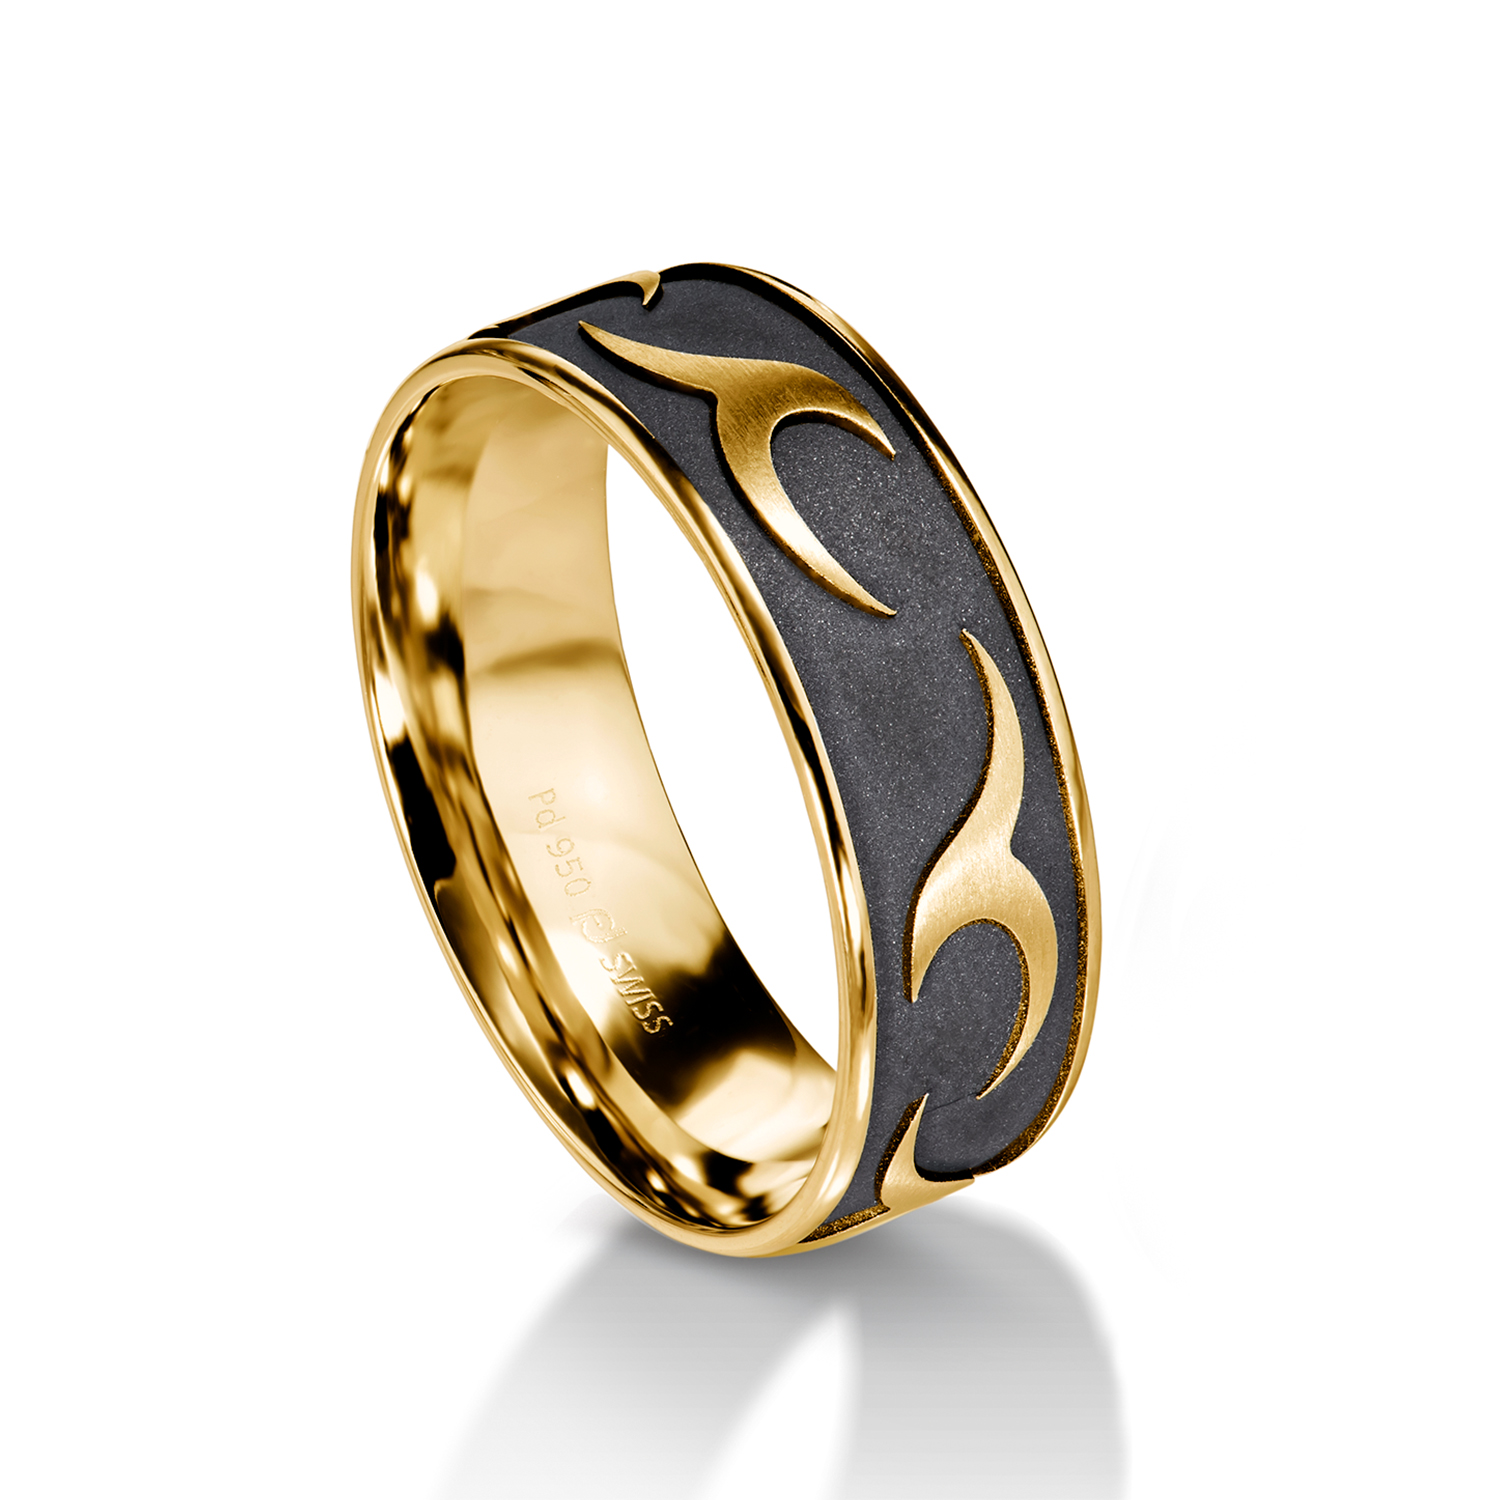 Man's world black wedding rings in yellow gold